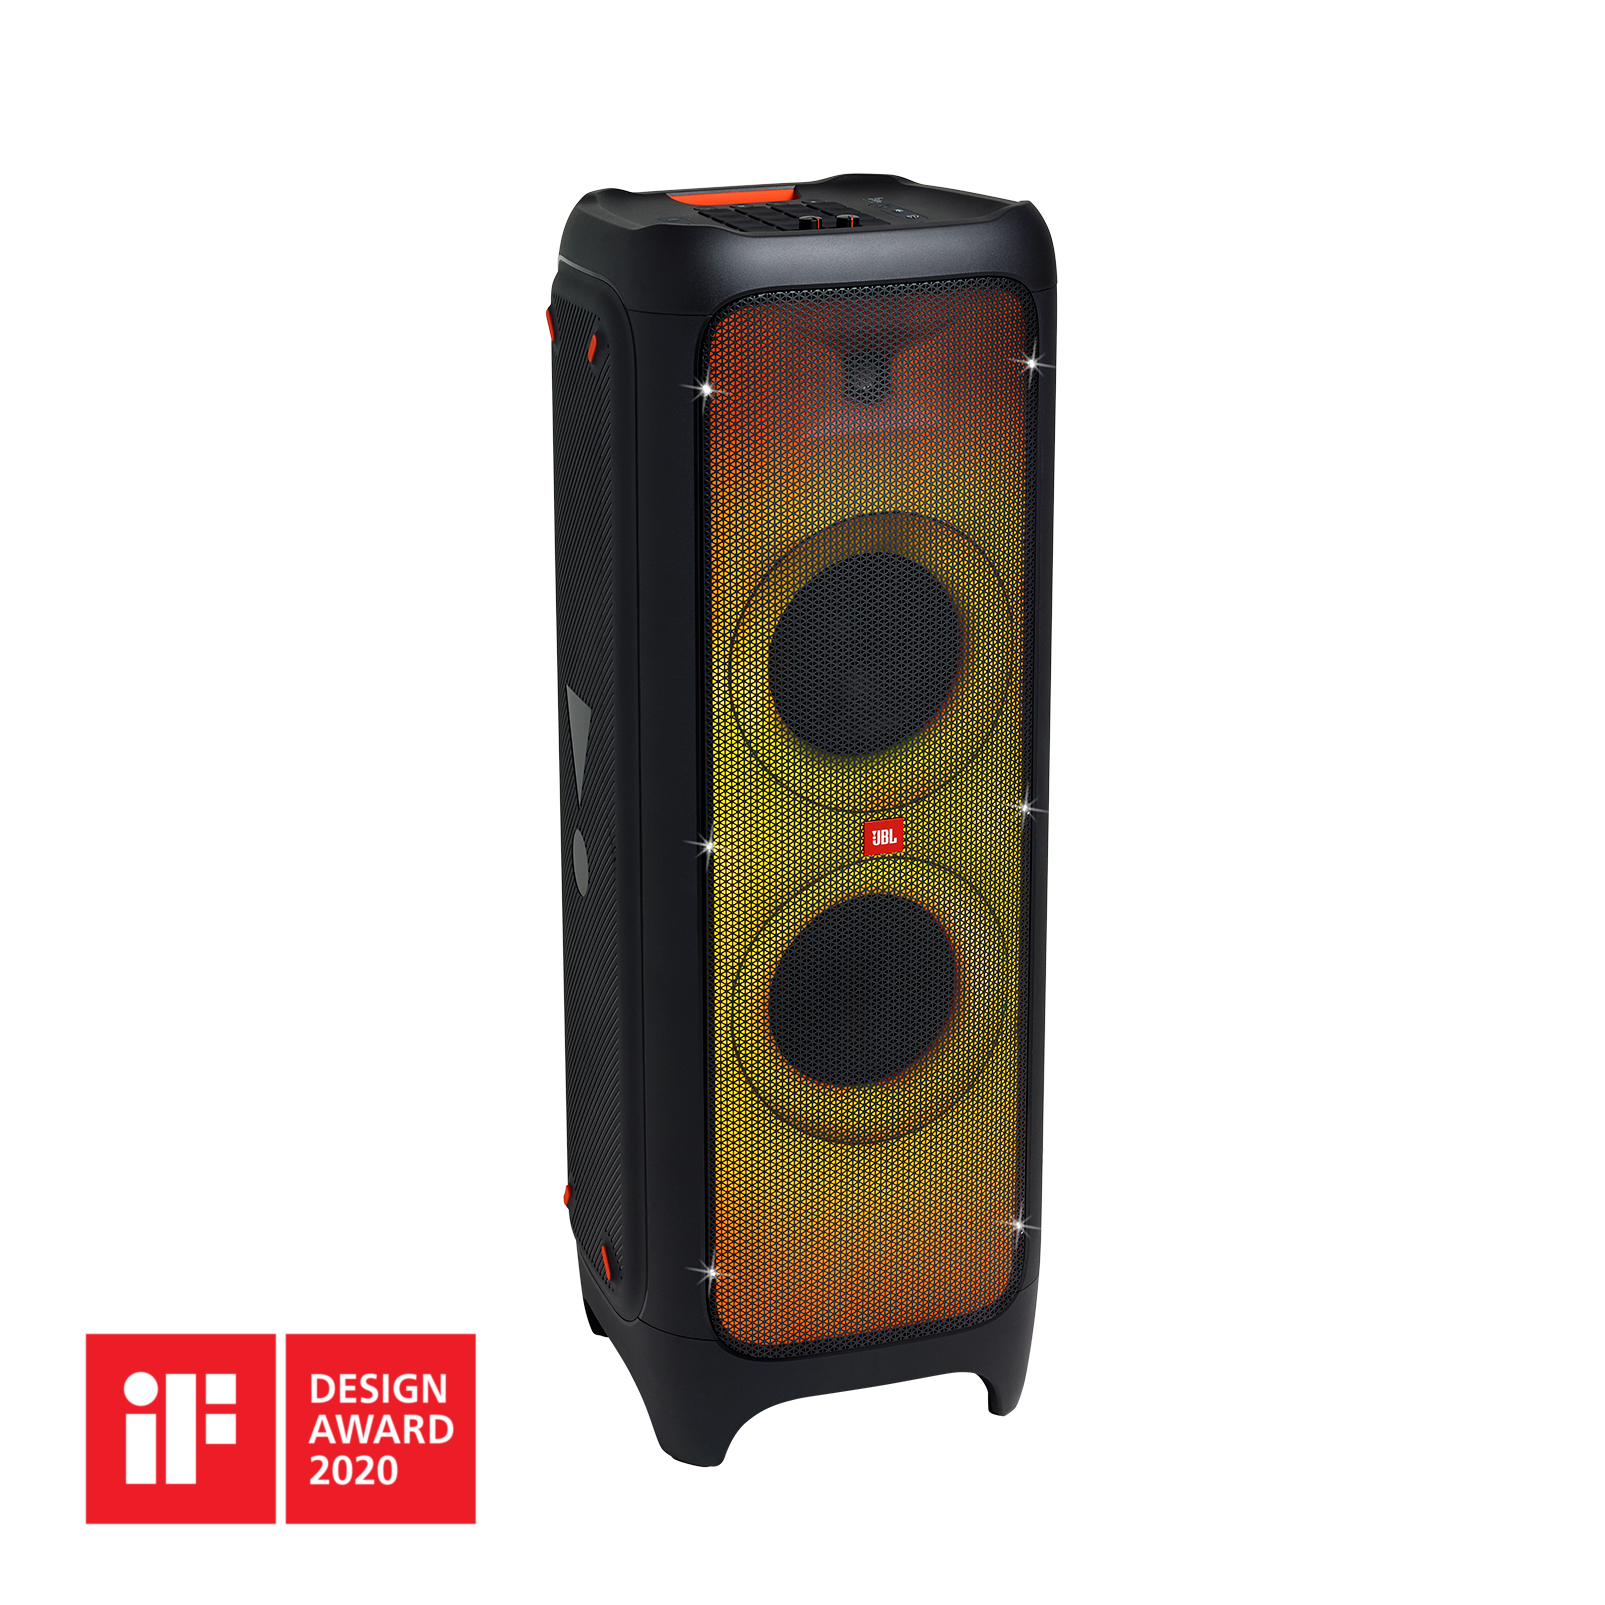 JBL PartyBox 1000 - Black - Powerful Bluetooth party speaker with full panel light effects - Hero